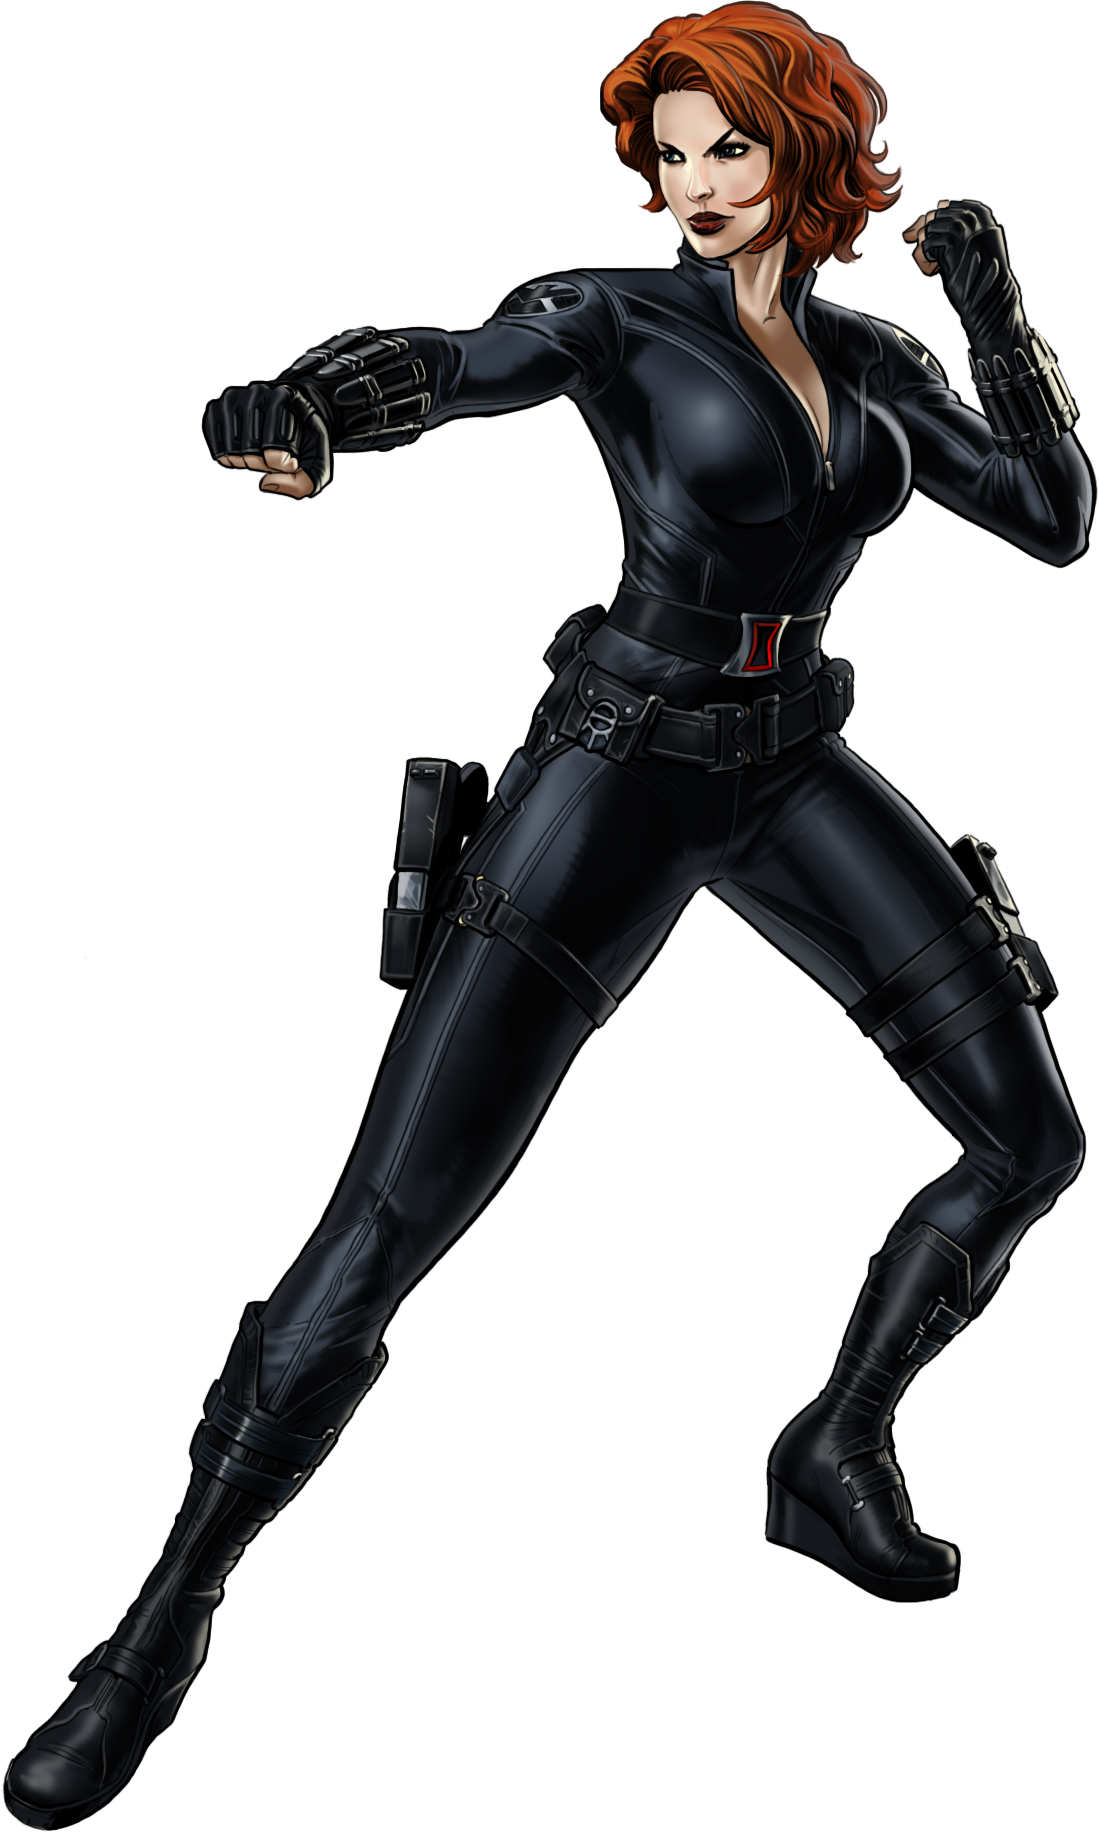 Black Widow PNG Free Download